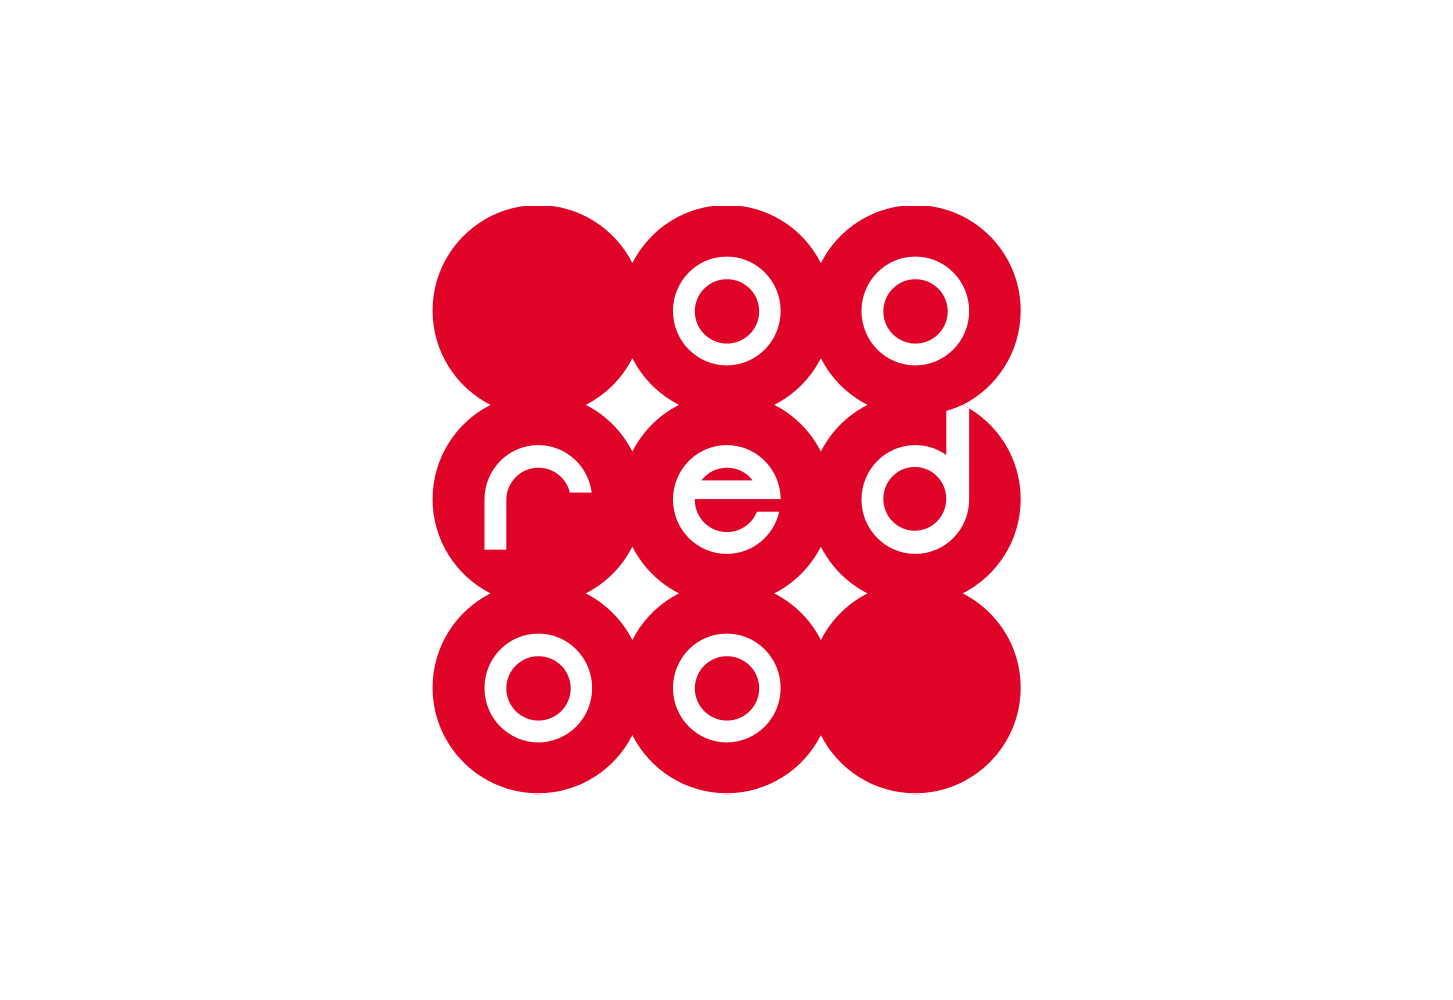 Ooredoo Data Q30